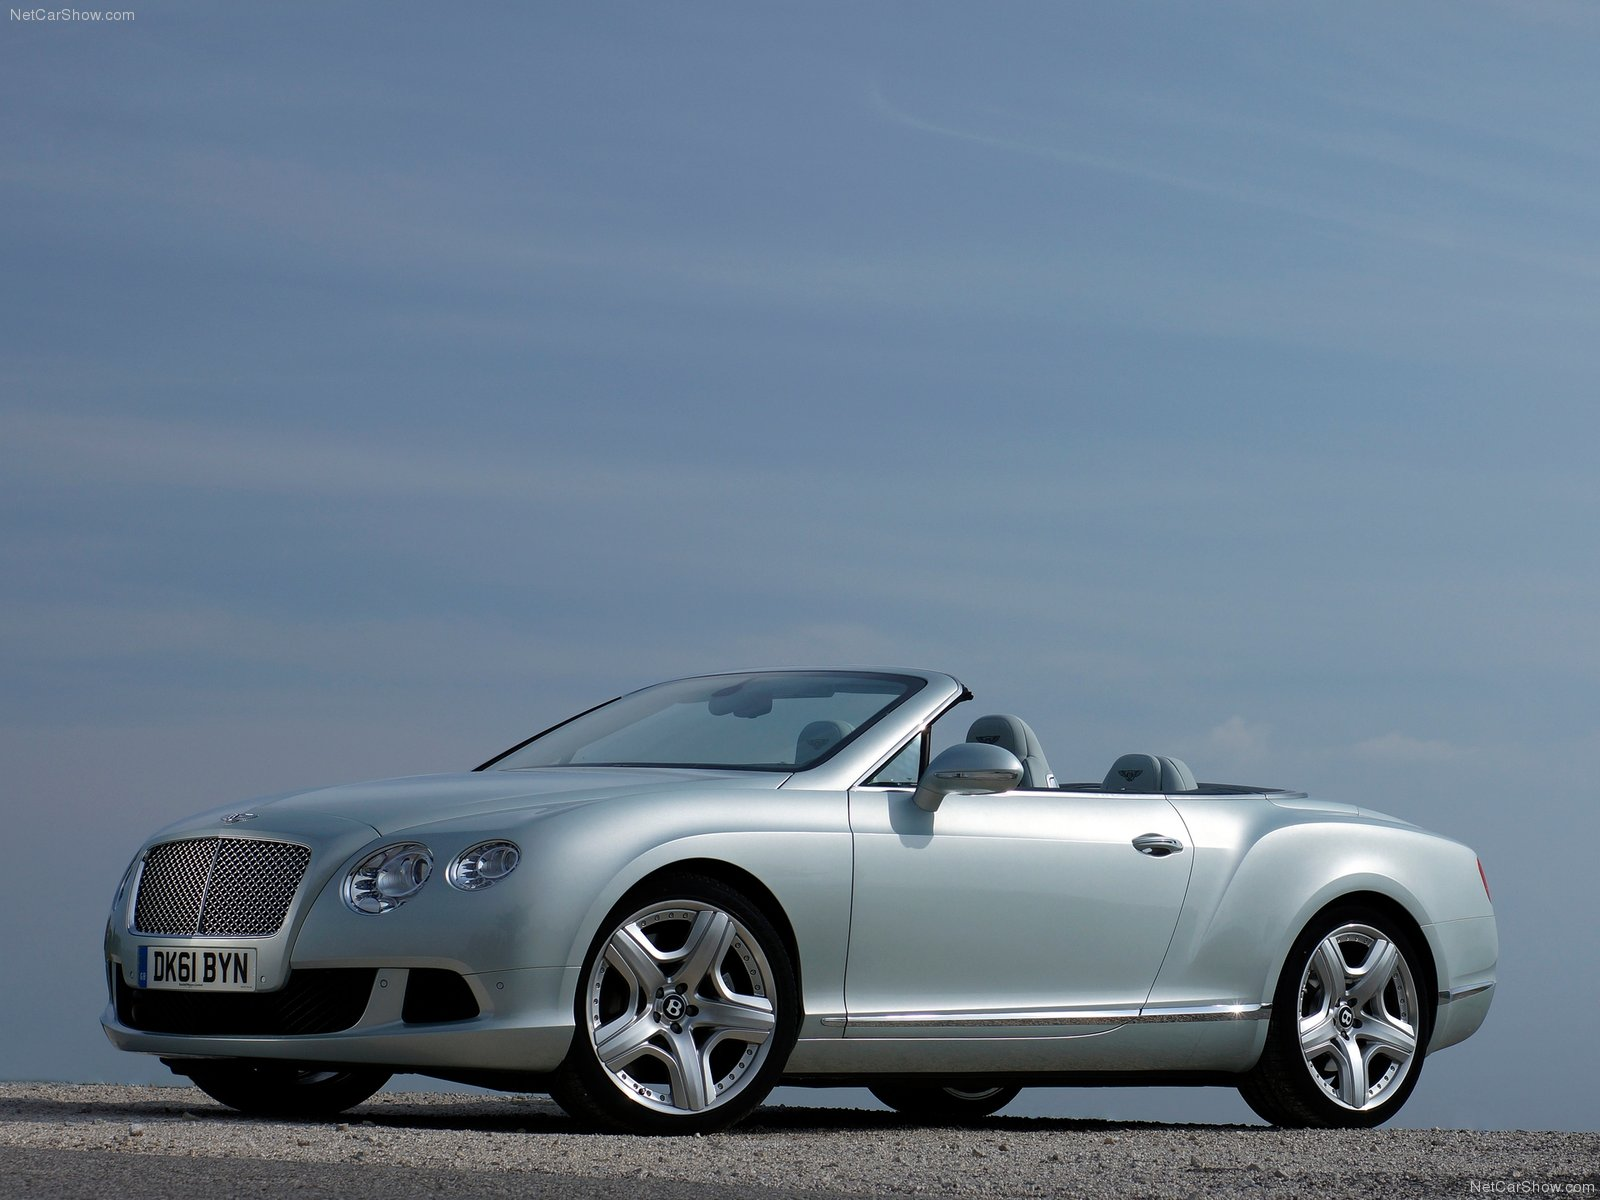 Bentley Continental Gtc Photos Photogallery With 83 Pics